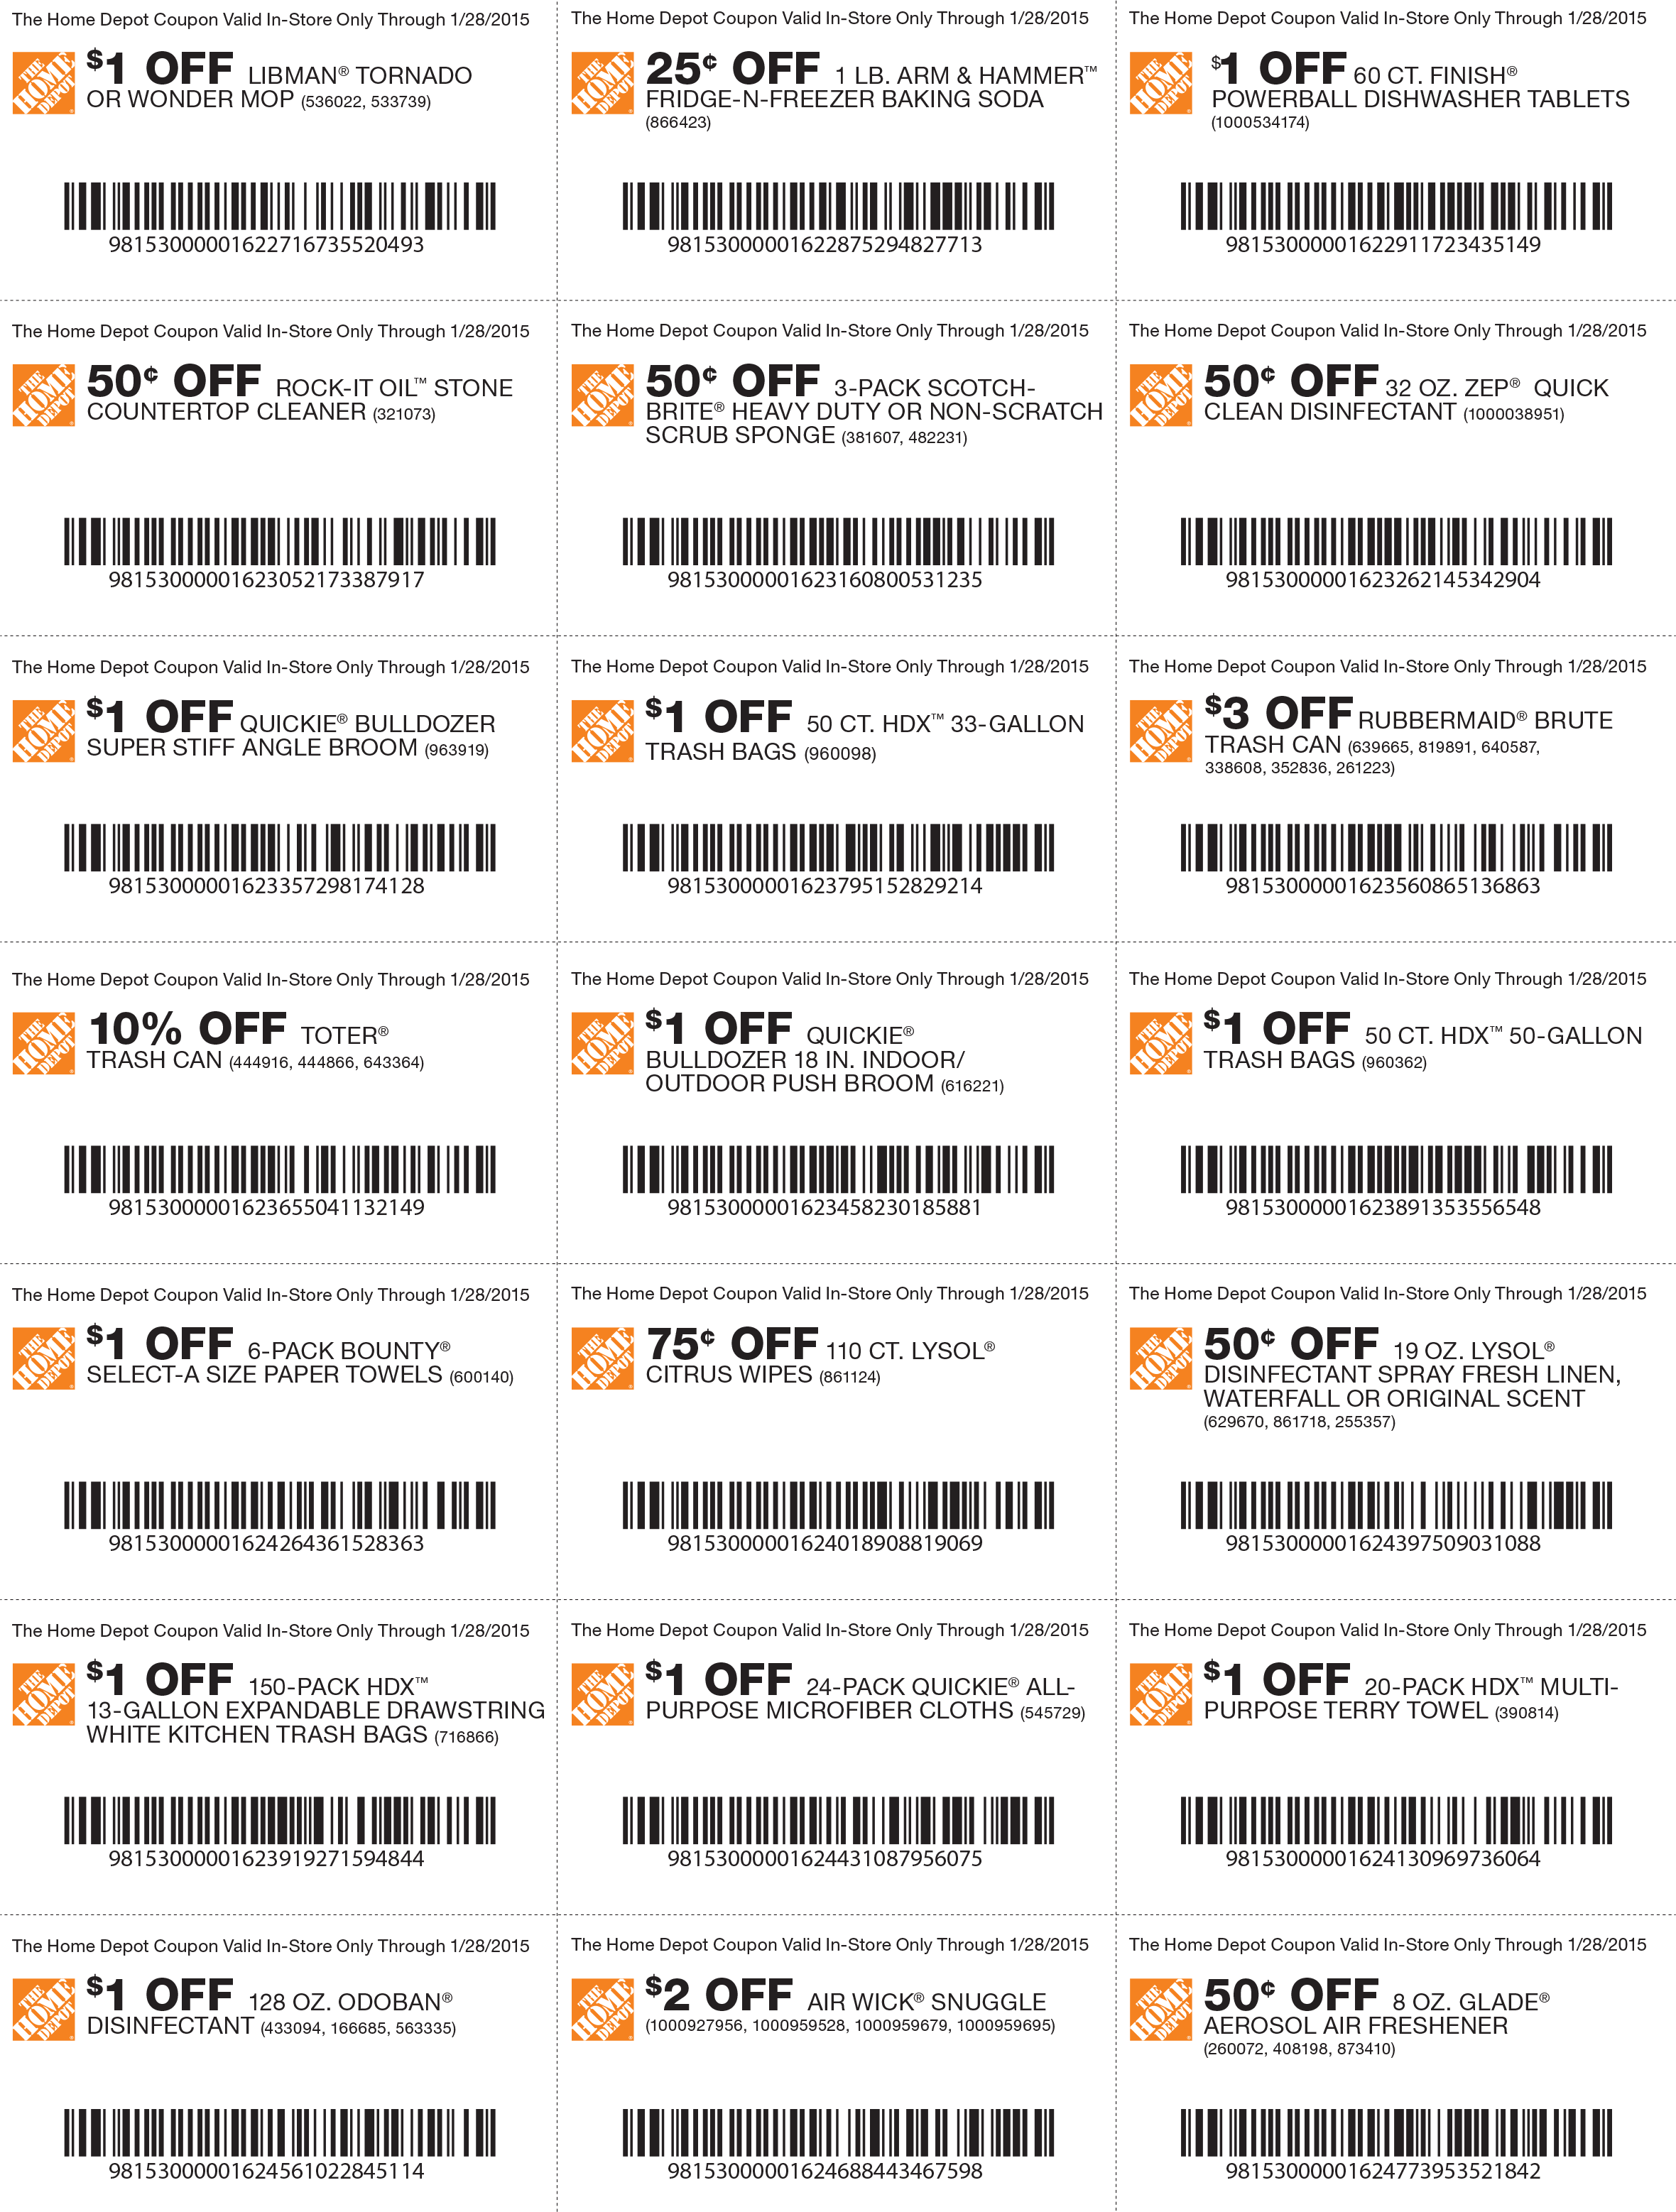 Homedepot coupon code